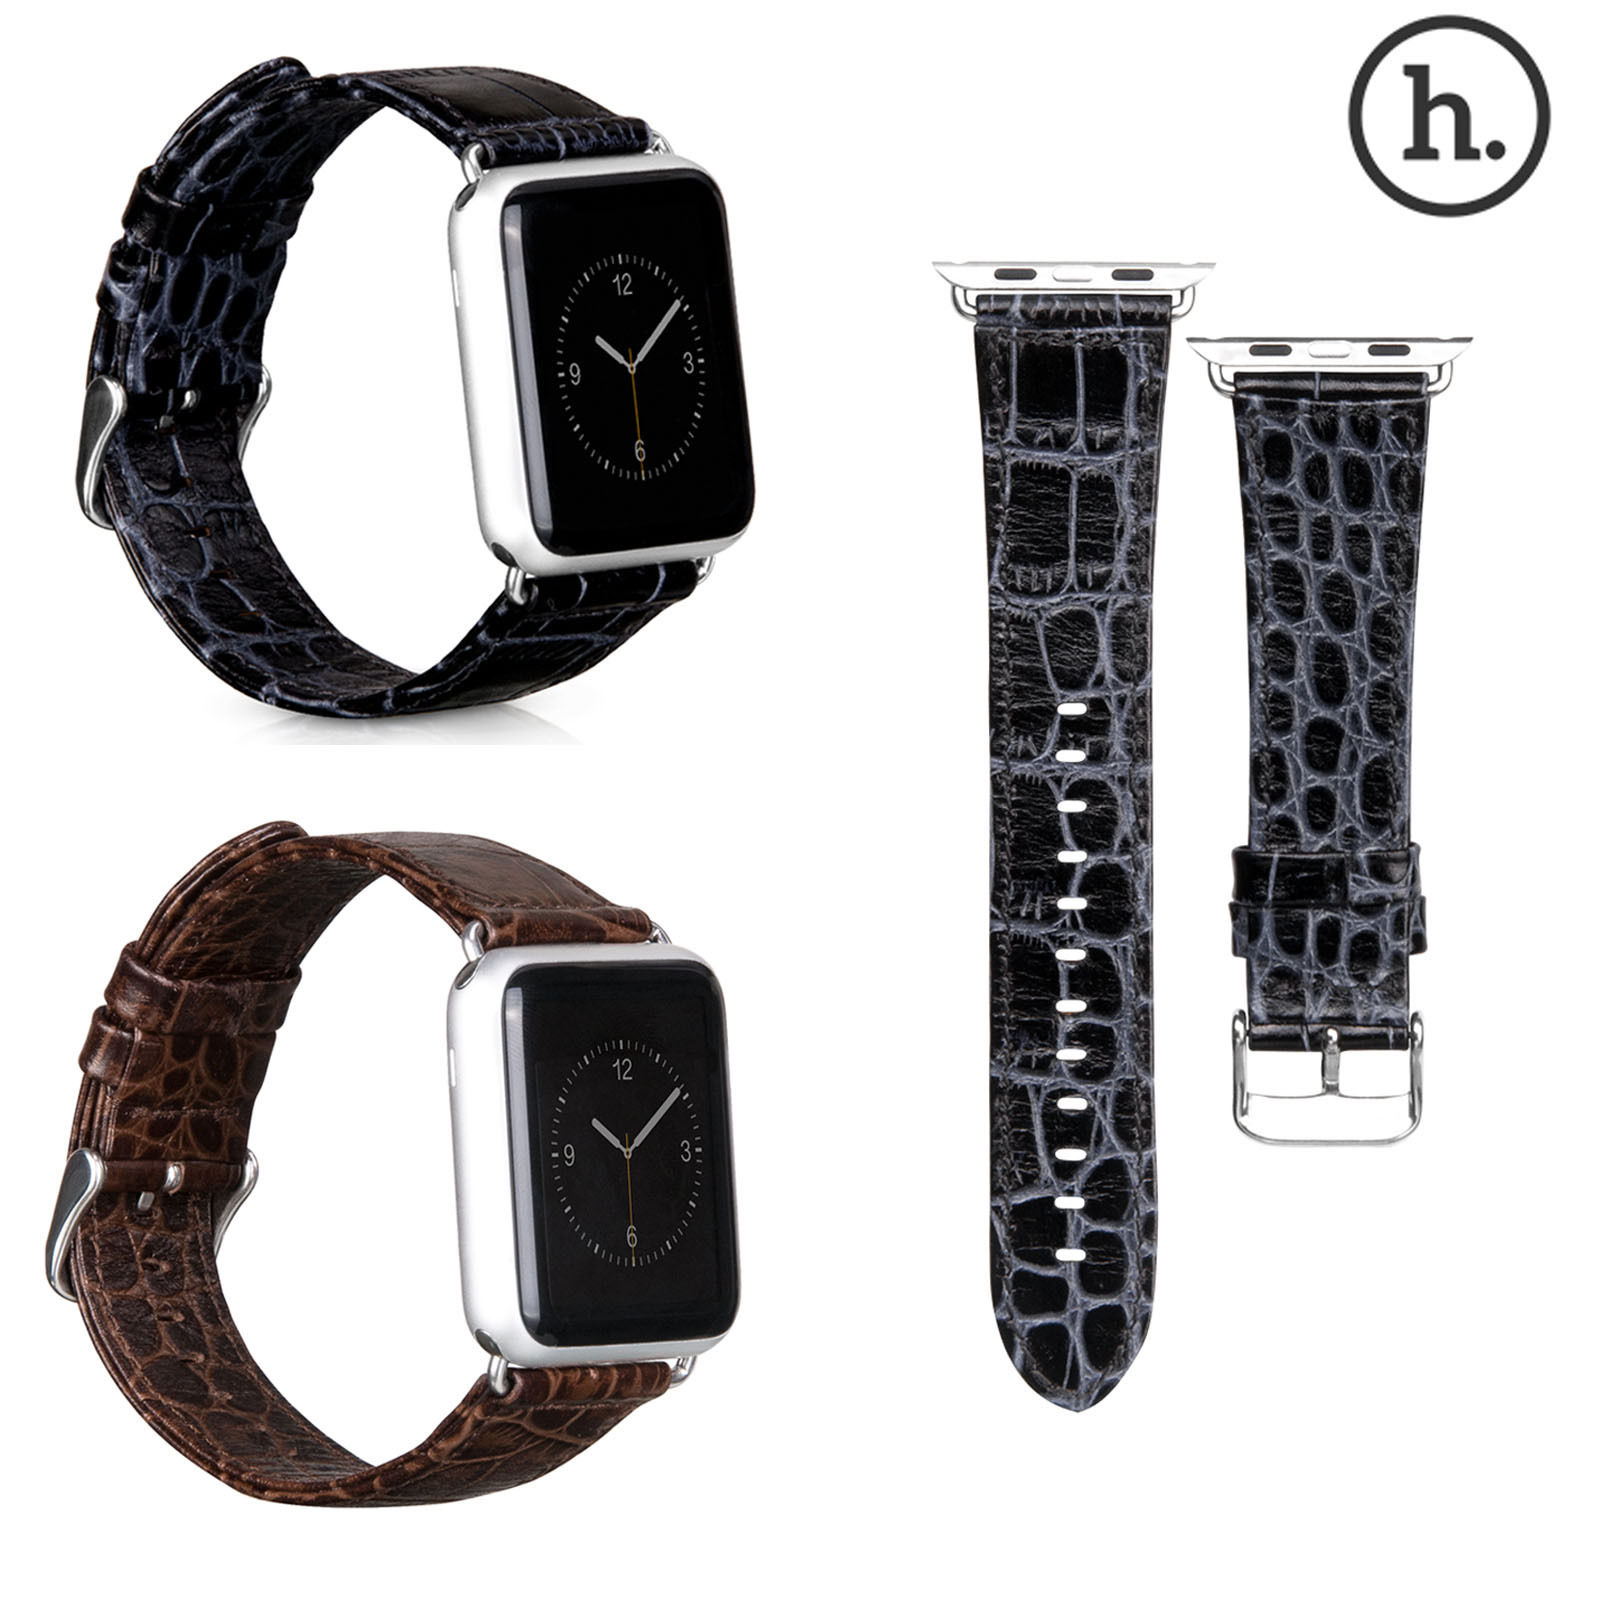 Original HOCO Limited Edition Crocodile Genuine Leather Strap for Apple Watch Series 2 Watch Band for iWatch 1st 42mm 38mm Belt kakapi crocodile skin genuine leather watchband with connector for apple watch 38mm series 2 series 1 pink